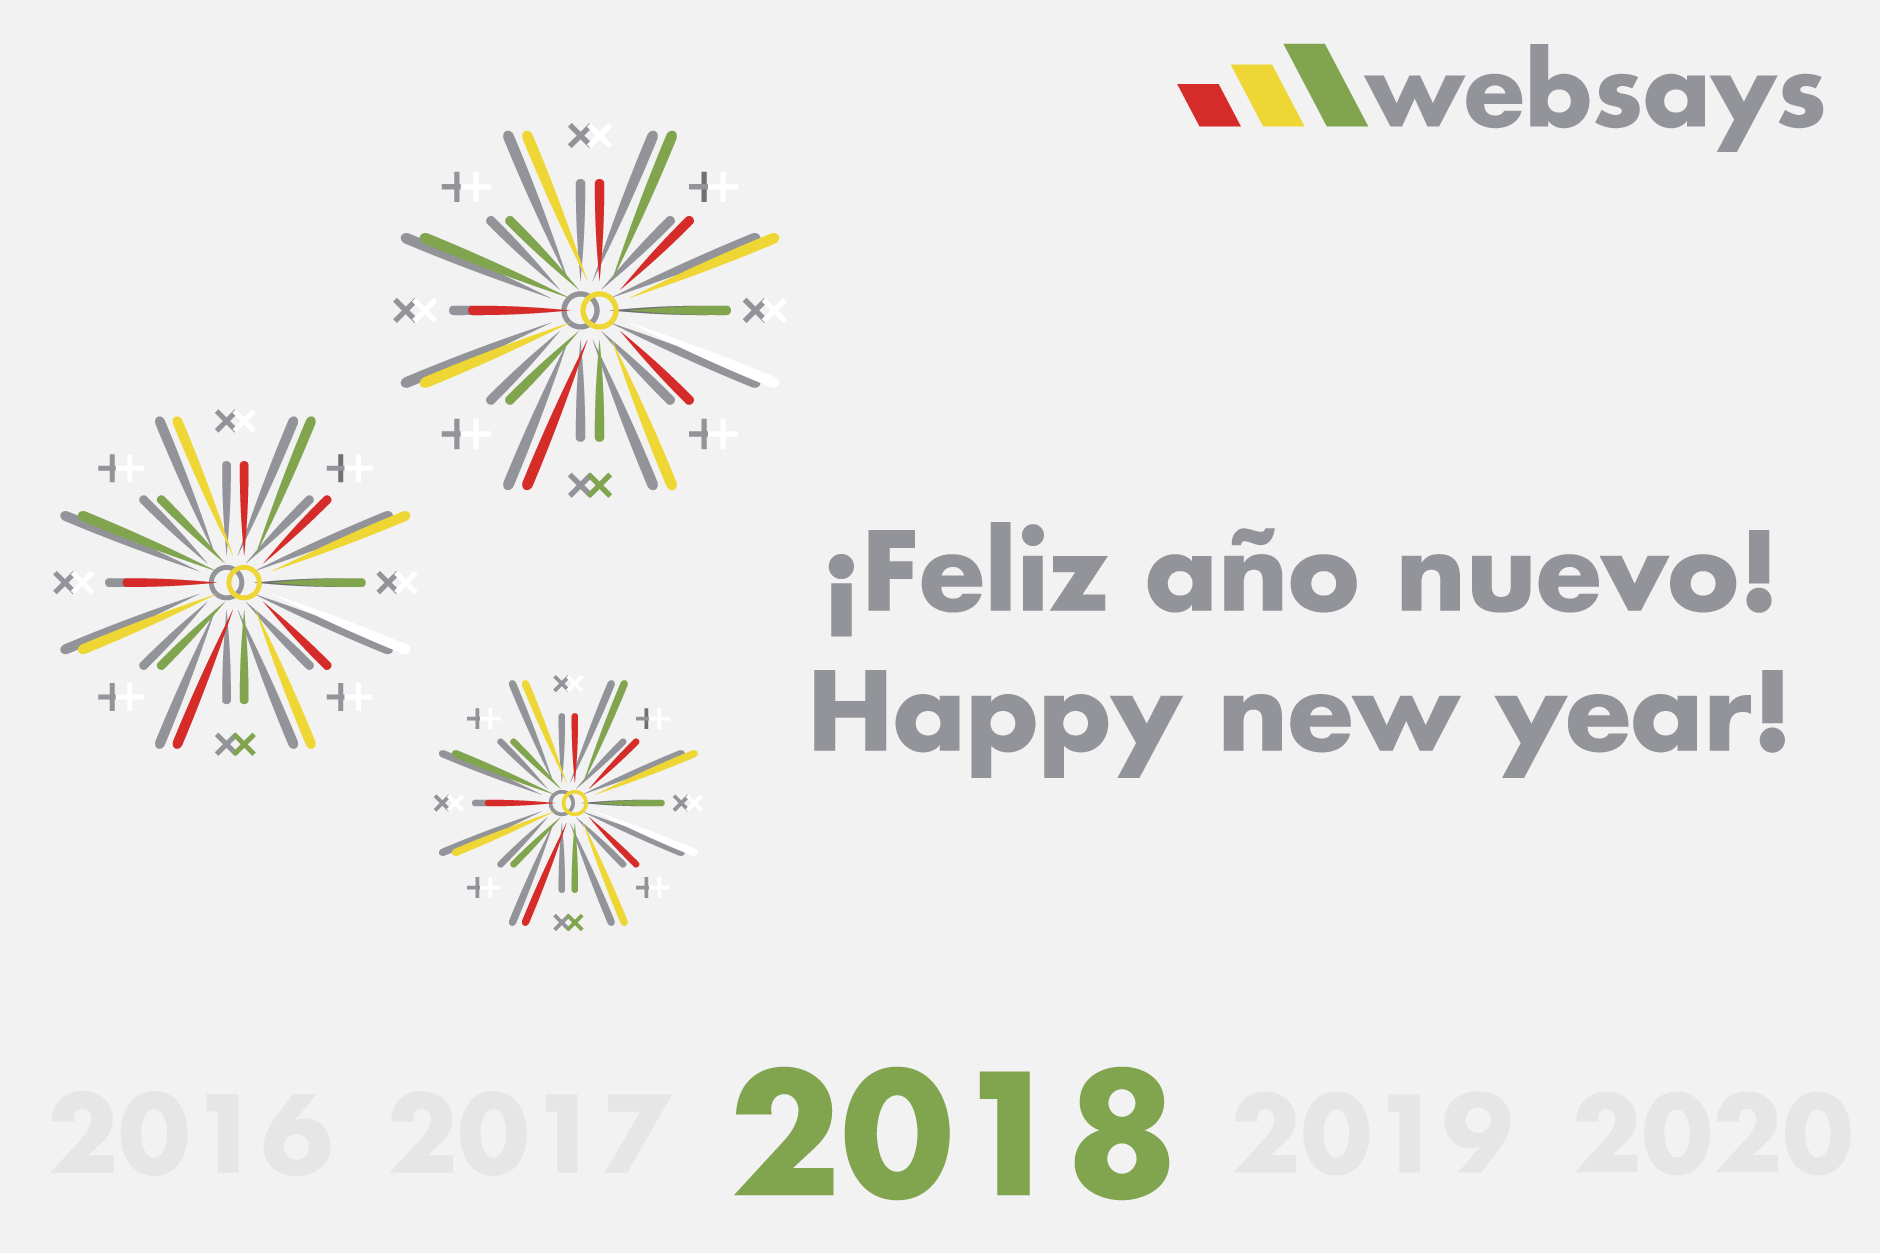 The Websays team wishes you a happy 2018! - Websays